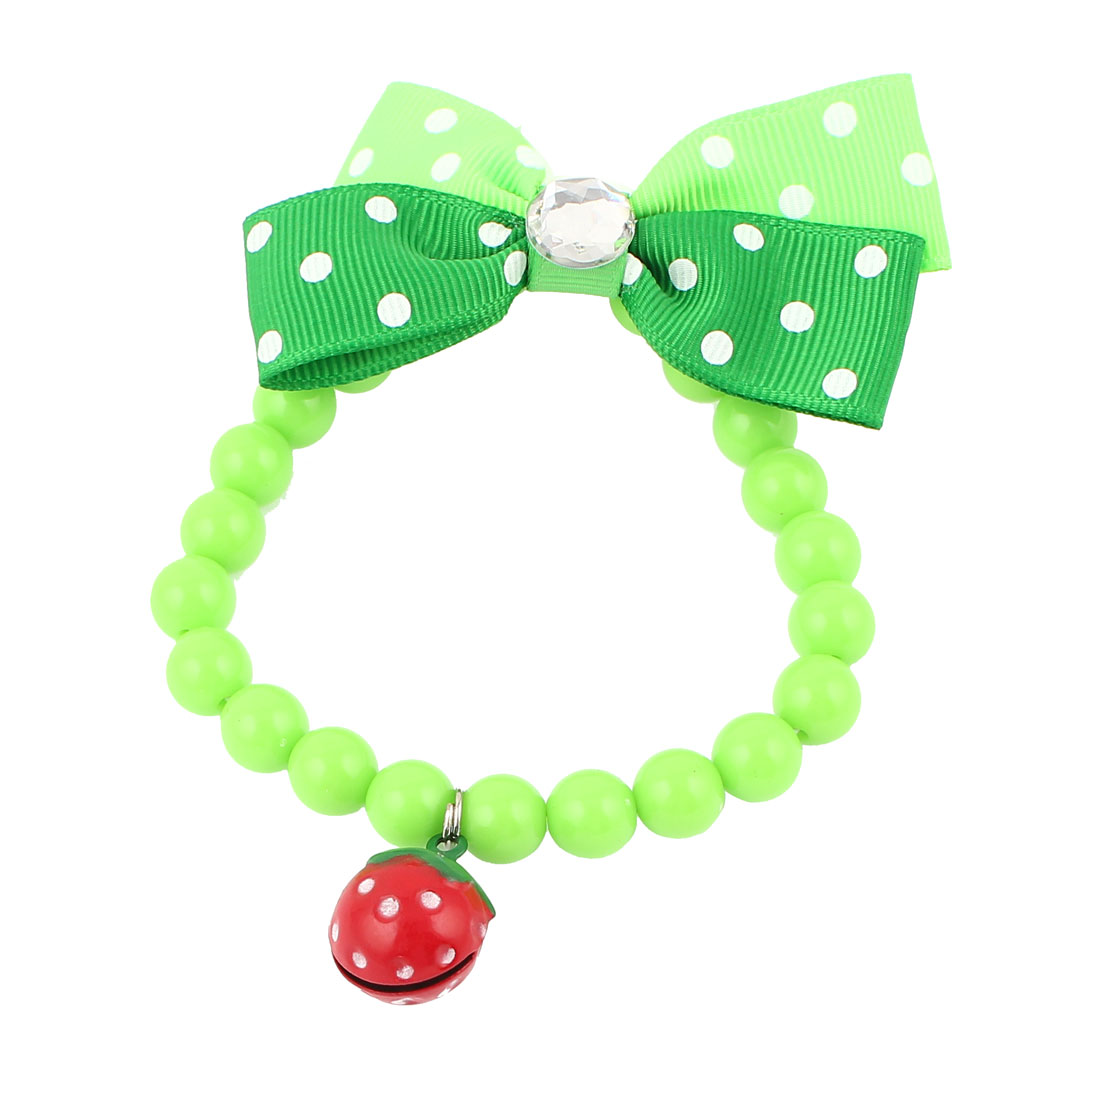 Metal Bell Pendant Bowtie Accent Pet Dog Plastic Beads Collar Necklace Green XS